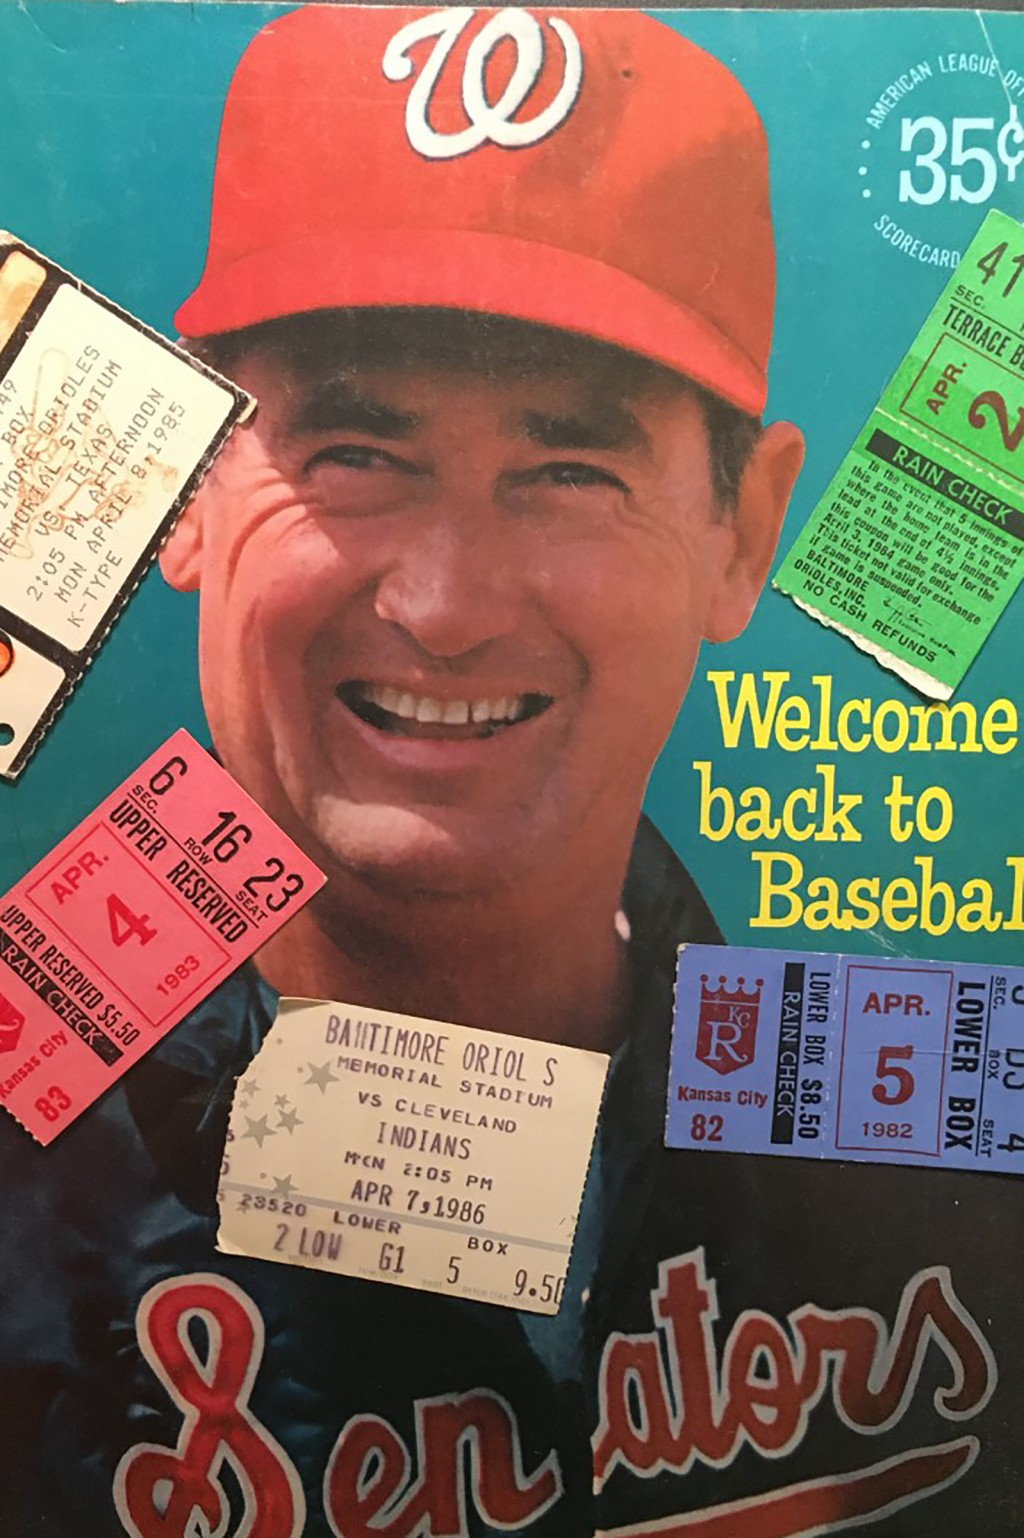 The Washington Senators 1969 opening day program featuring Ted Williams, adorned with ticket stubs from opening days in the 1980's is shown in New Yor...